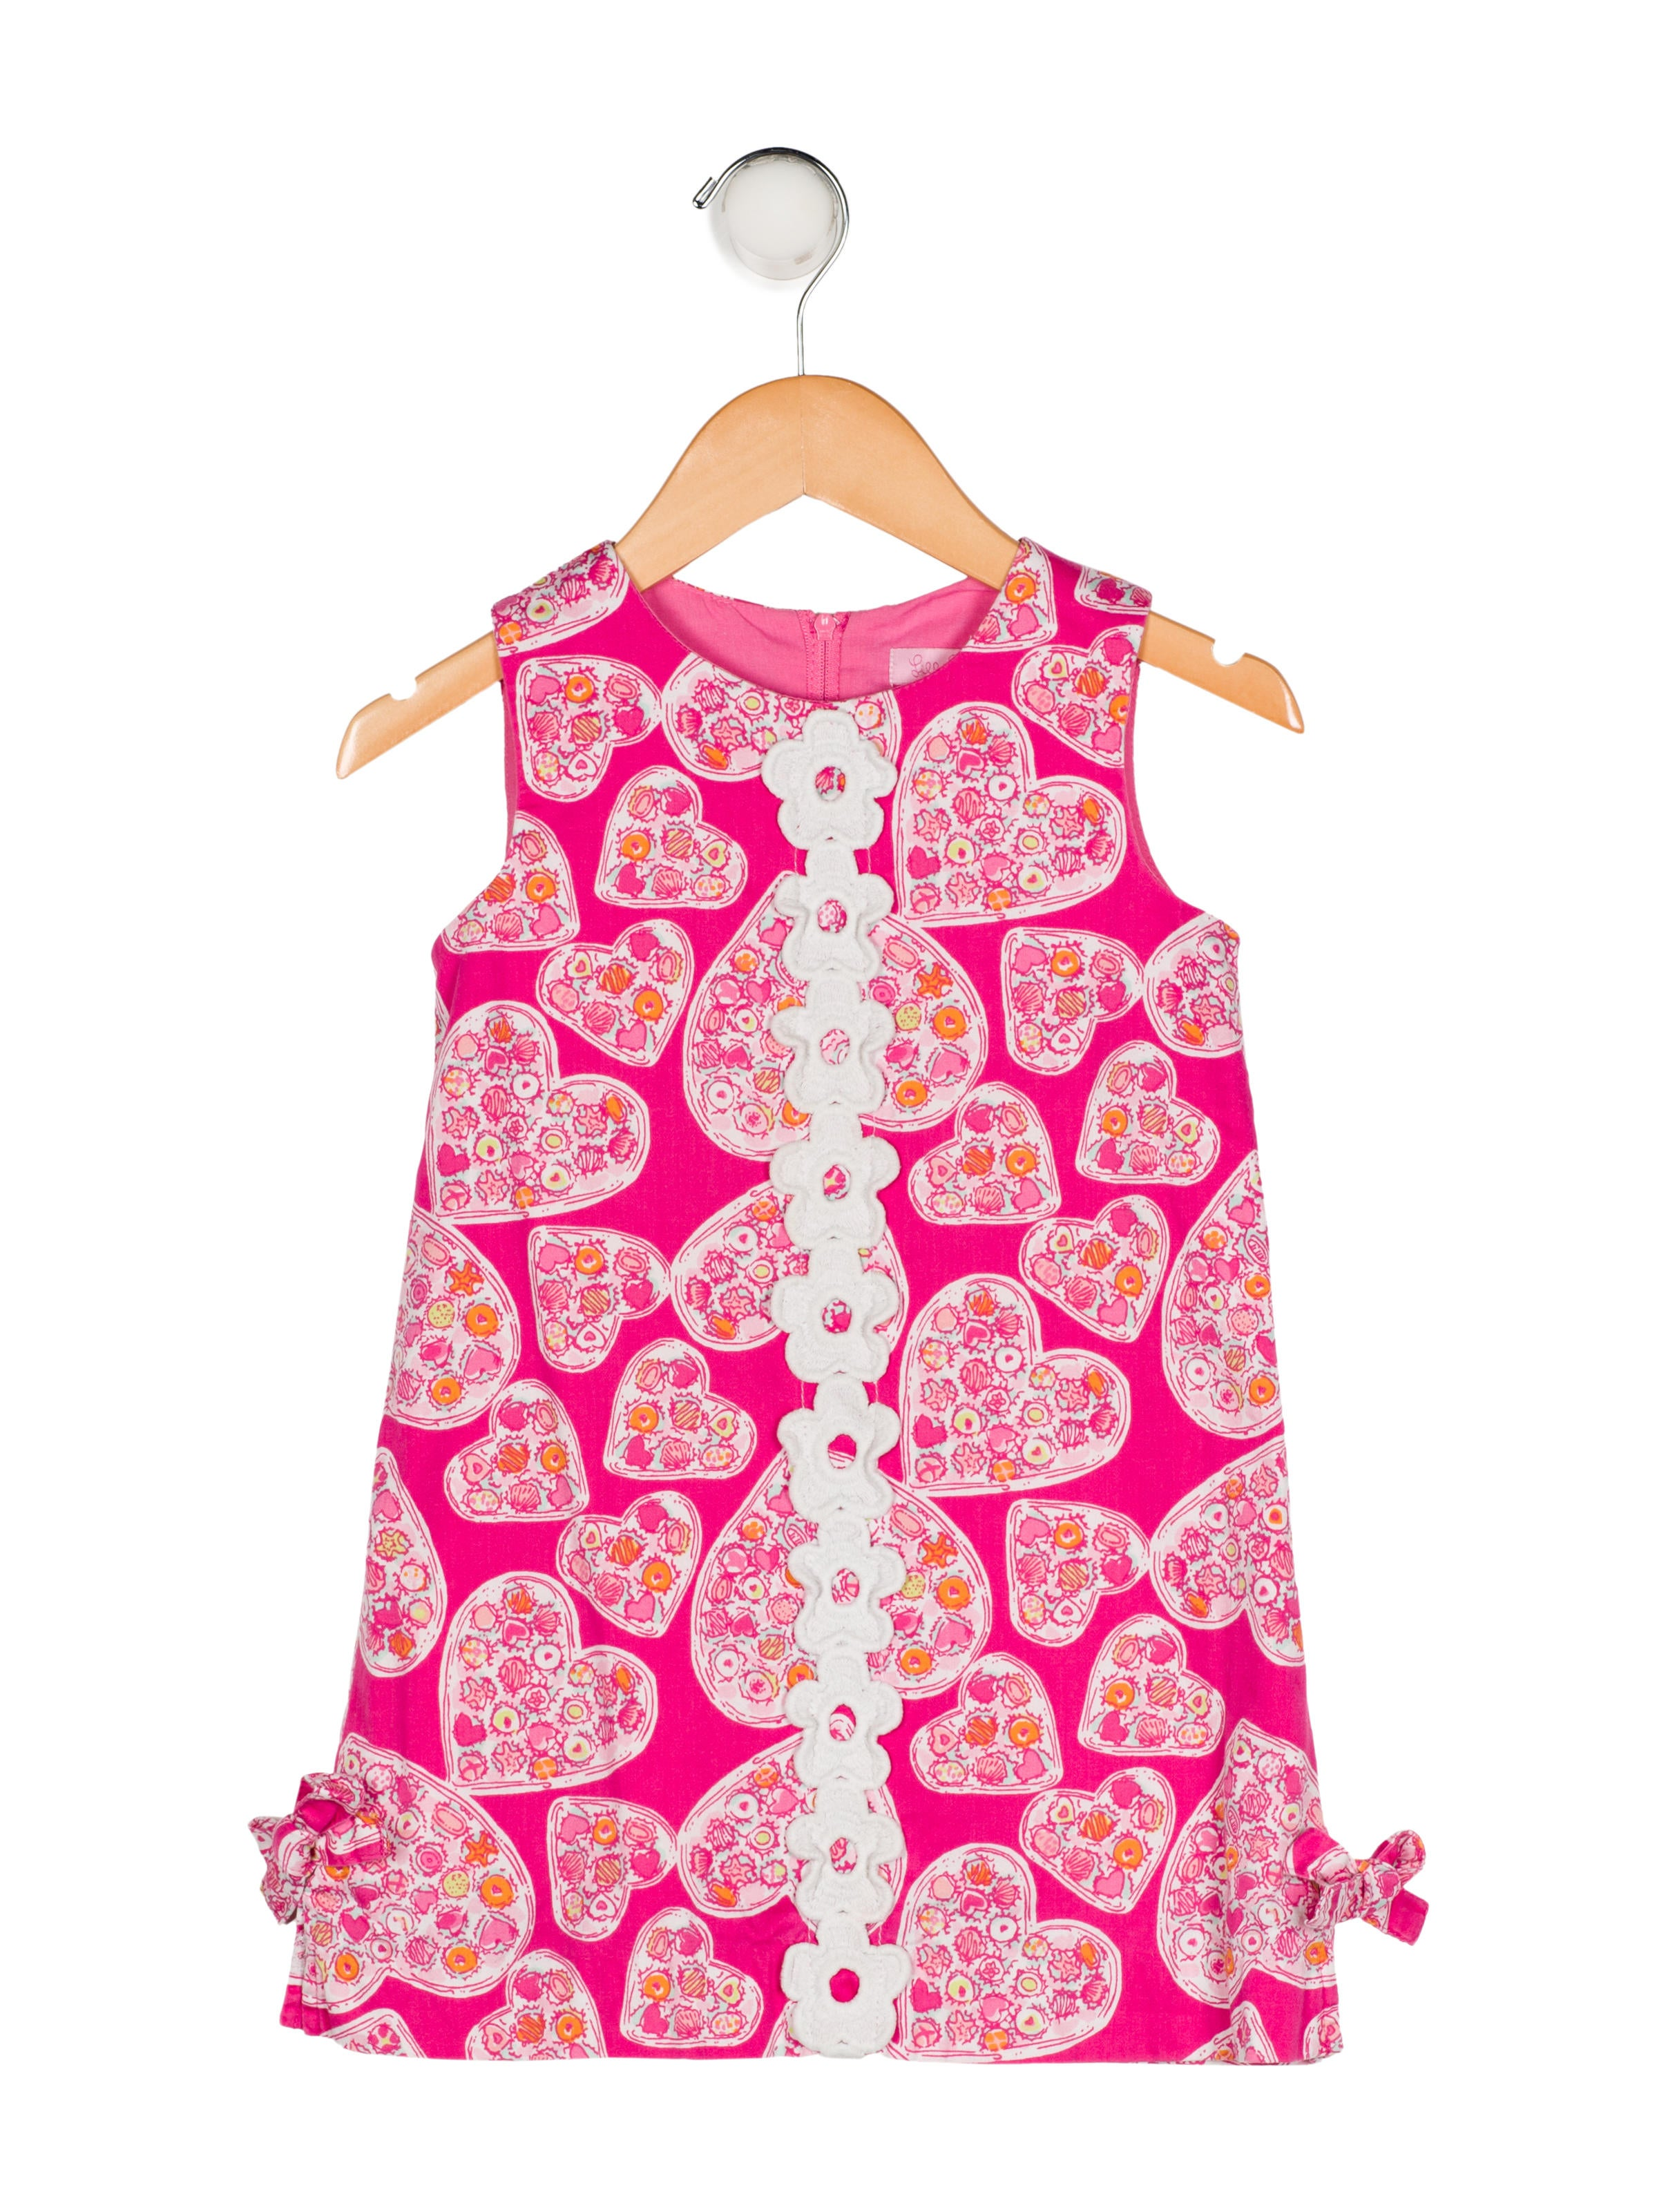 Lilly Pulitzer Girls Printed Appliqué Accented Dress Girls